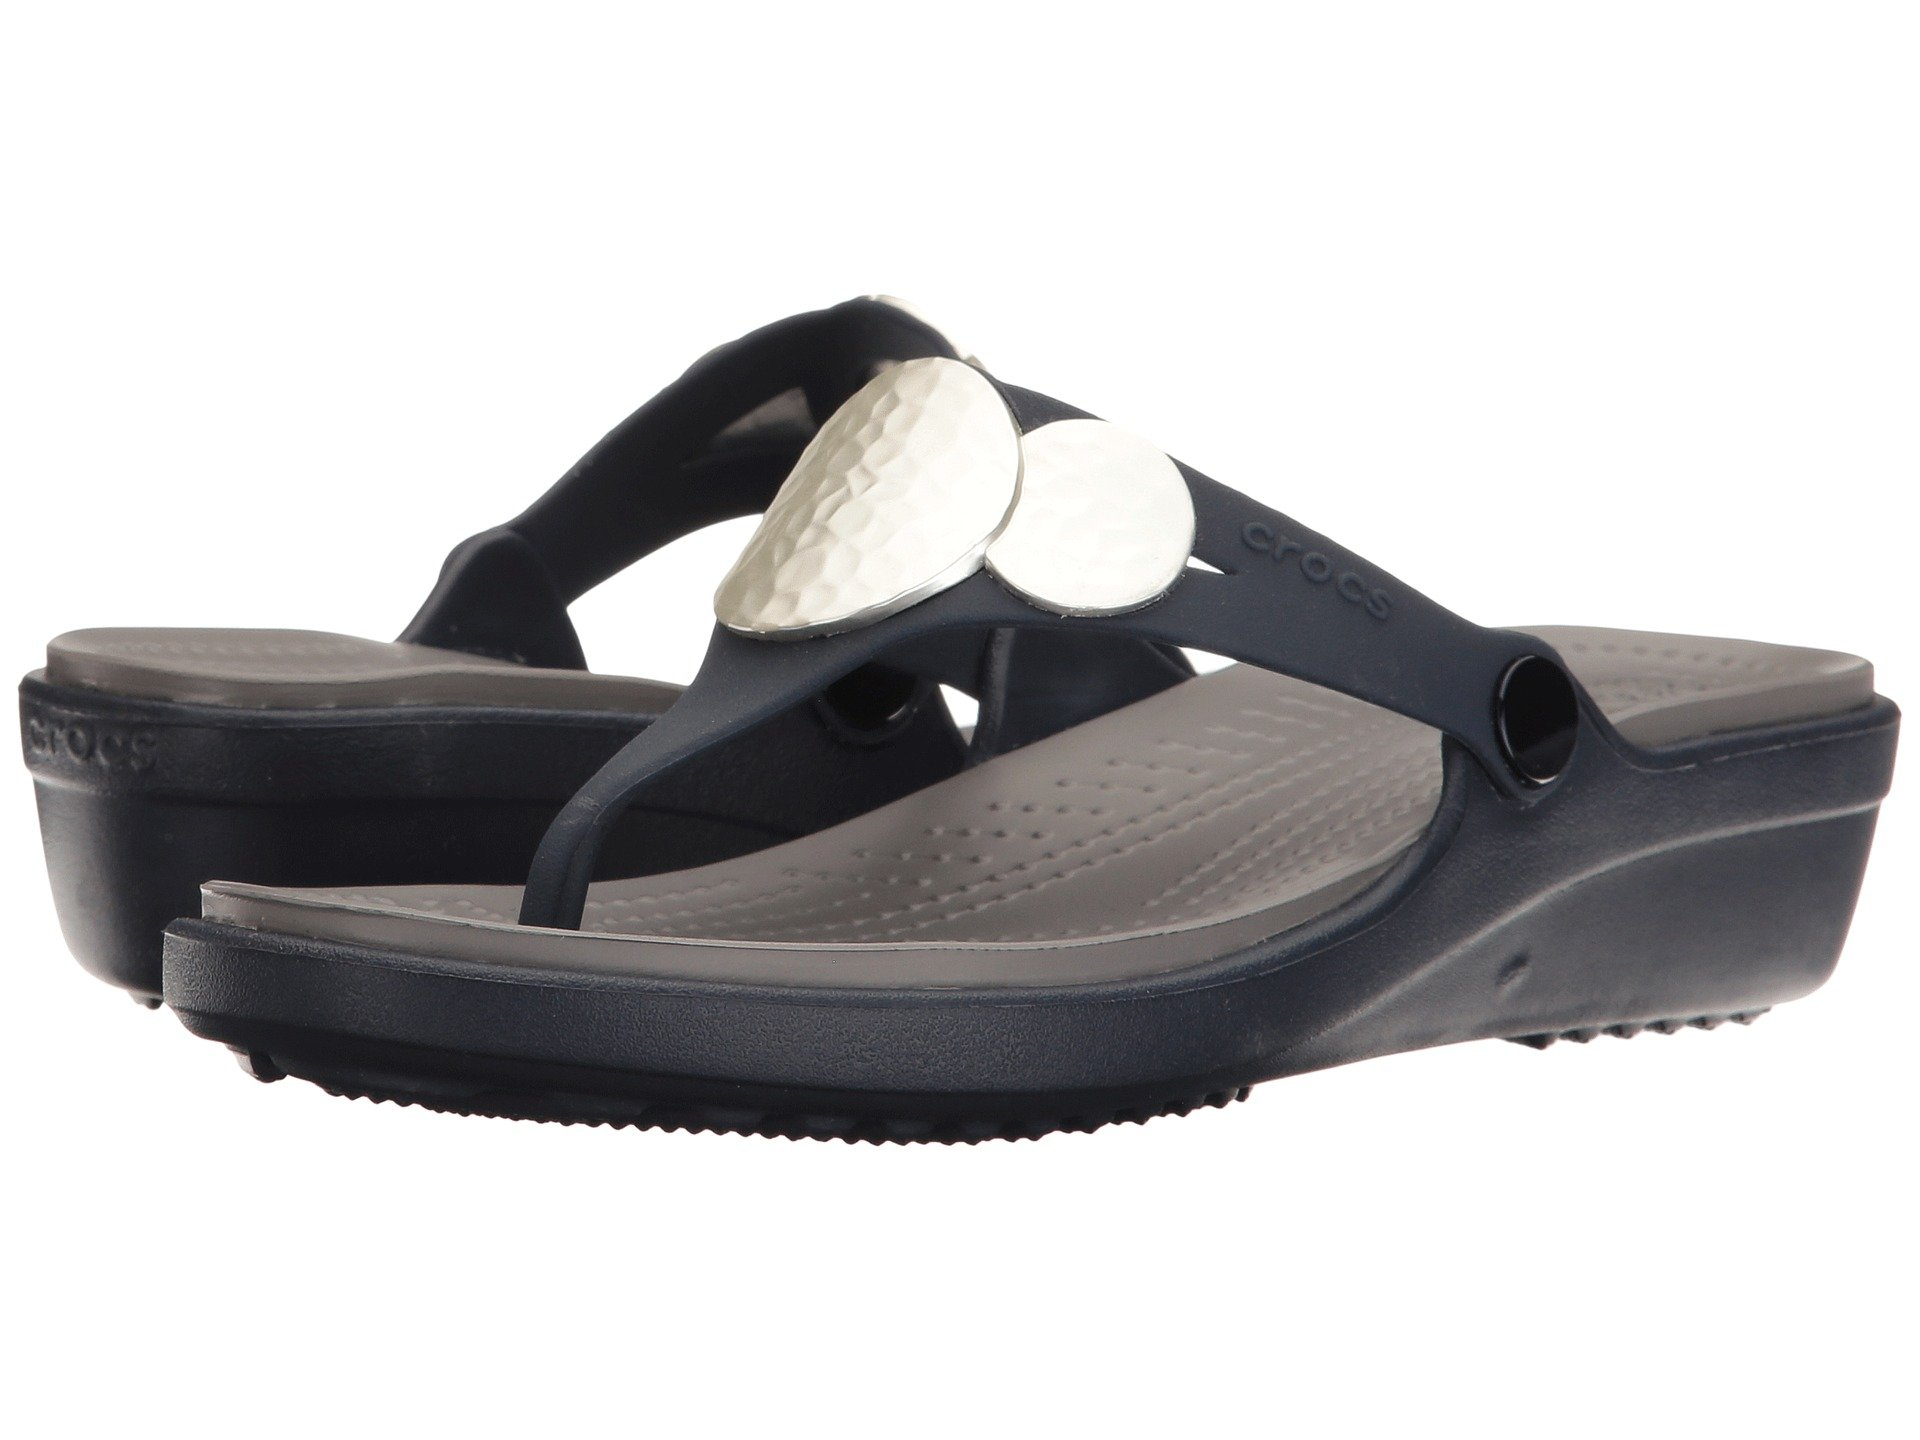 Off Brand Crocs Wedge Shoes